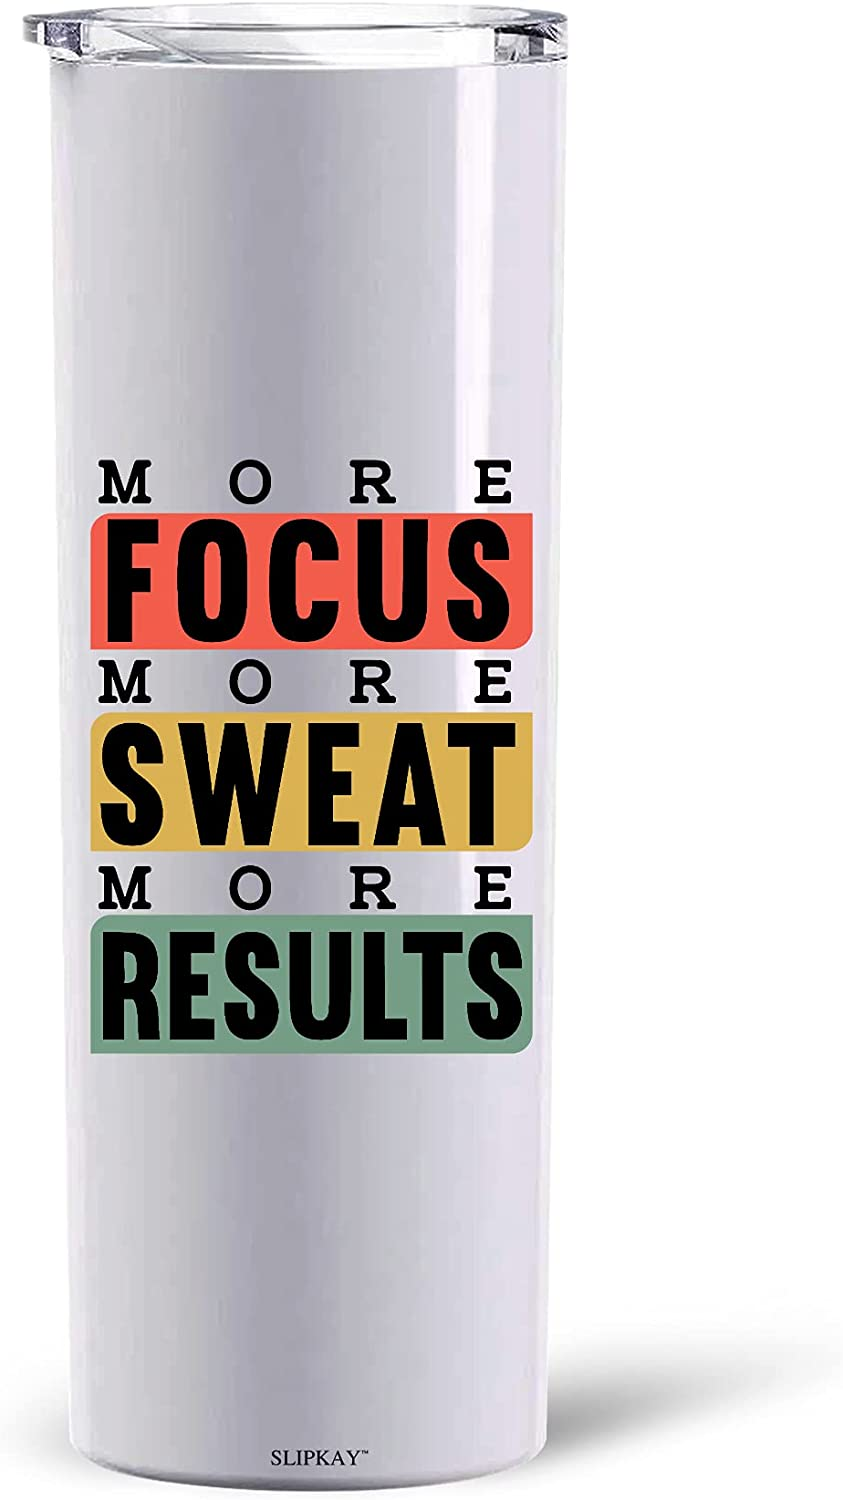 More Focus Sweat Results 30oz Tumbler Skinny Sales results Sales of SALE items from new works No. 1